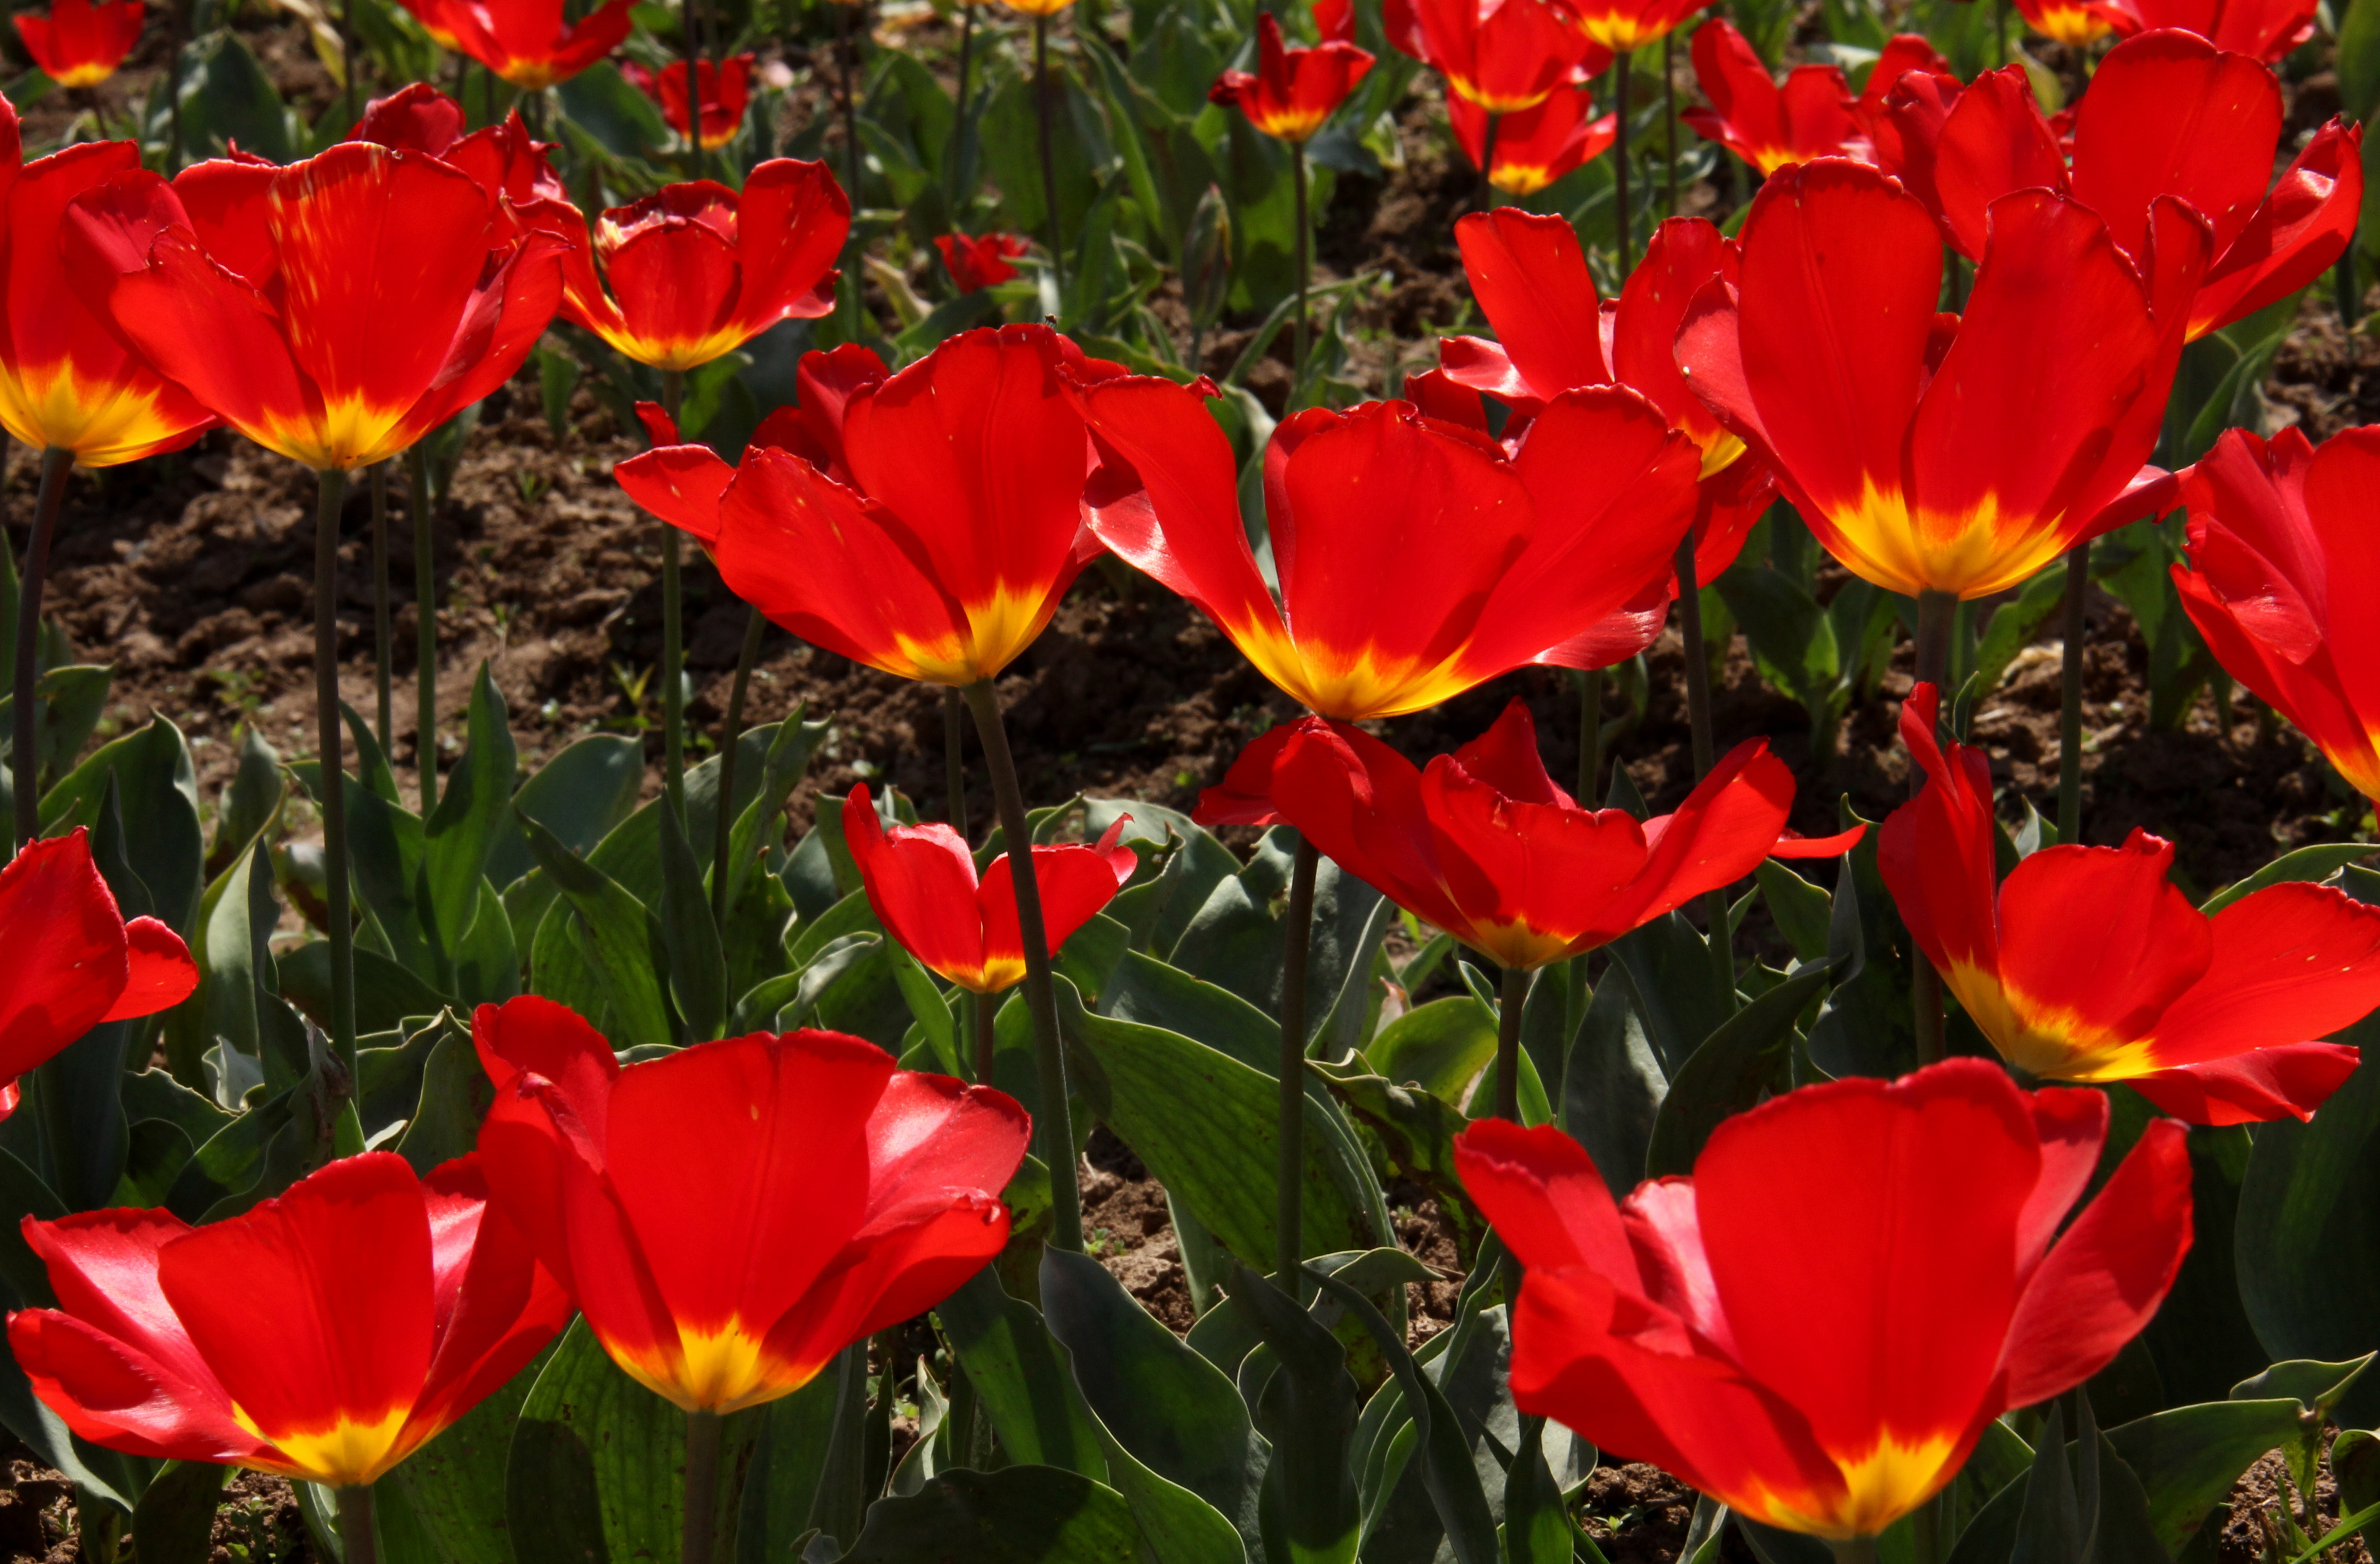 there are hundreds of varieties at srinagar tulip festival